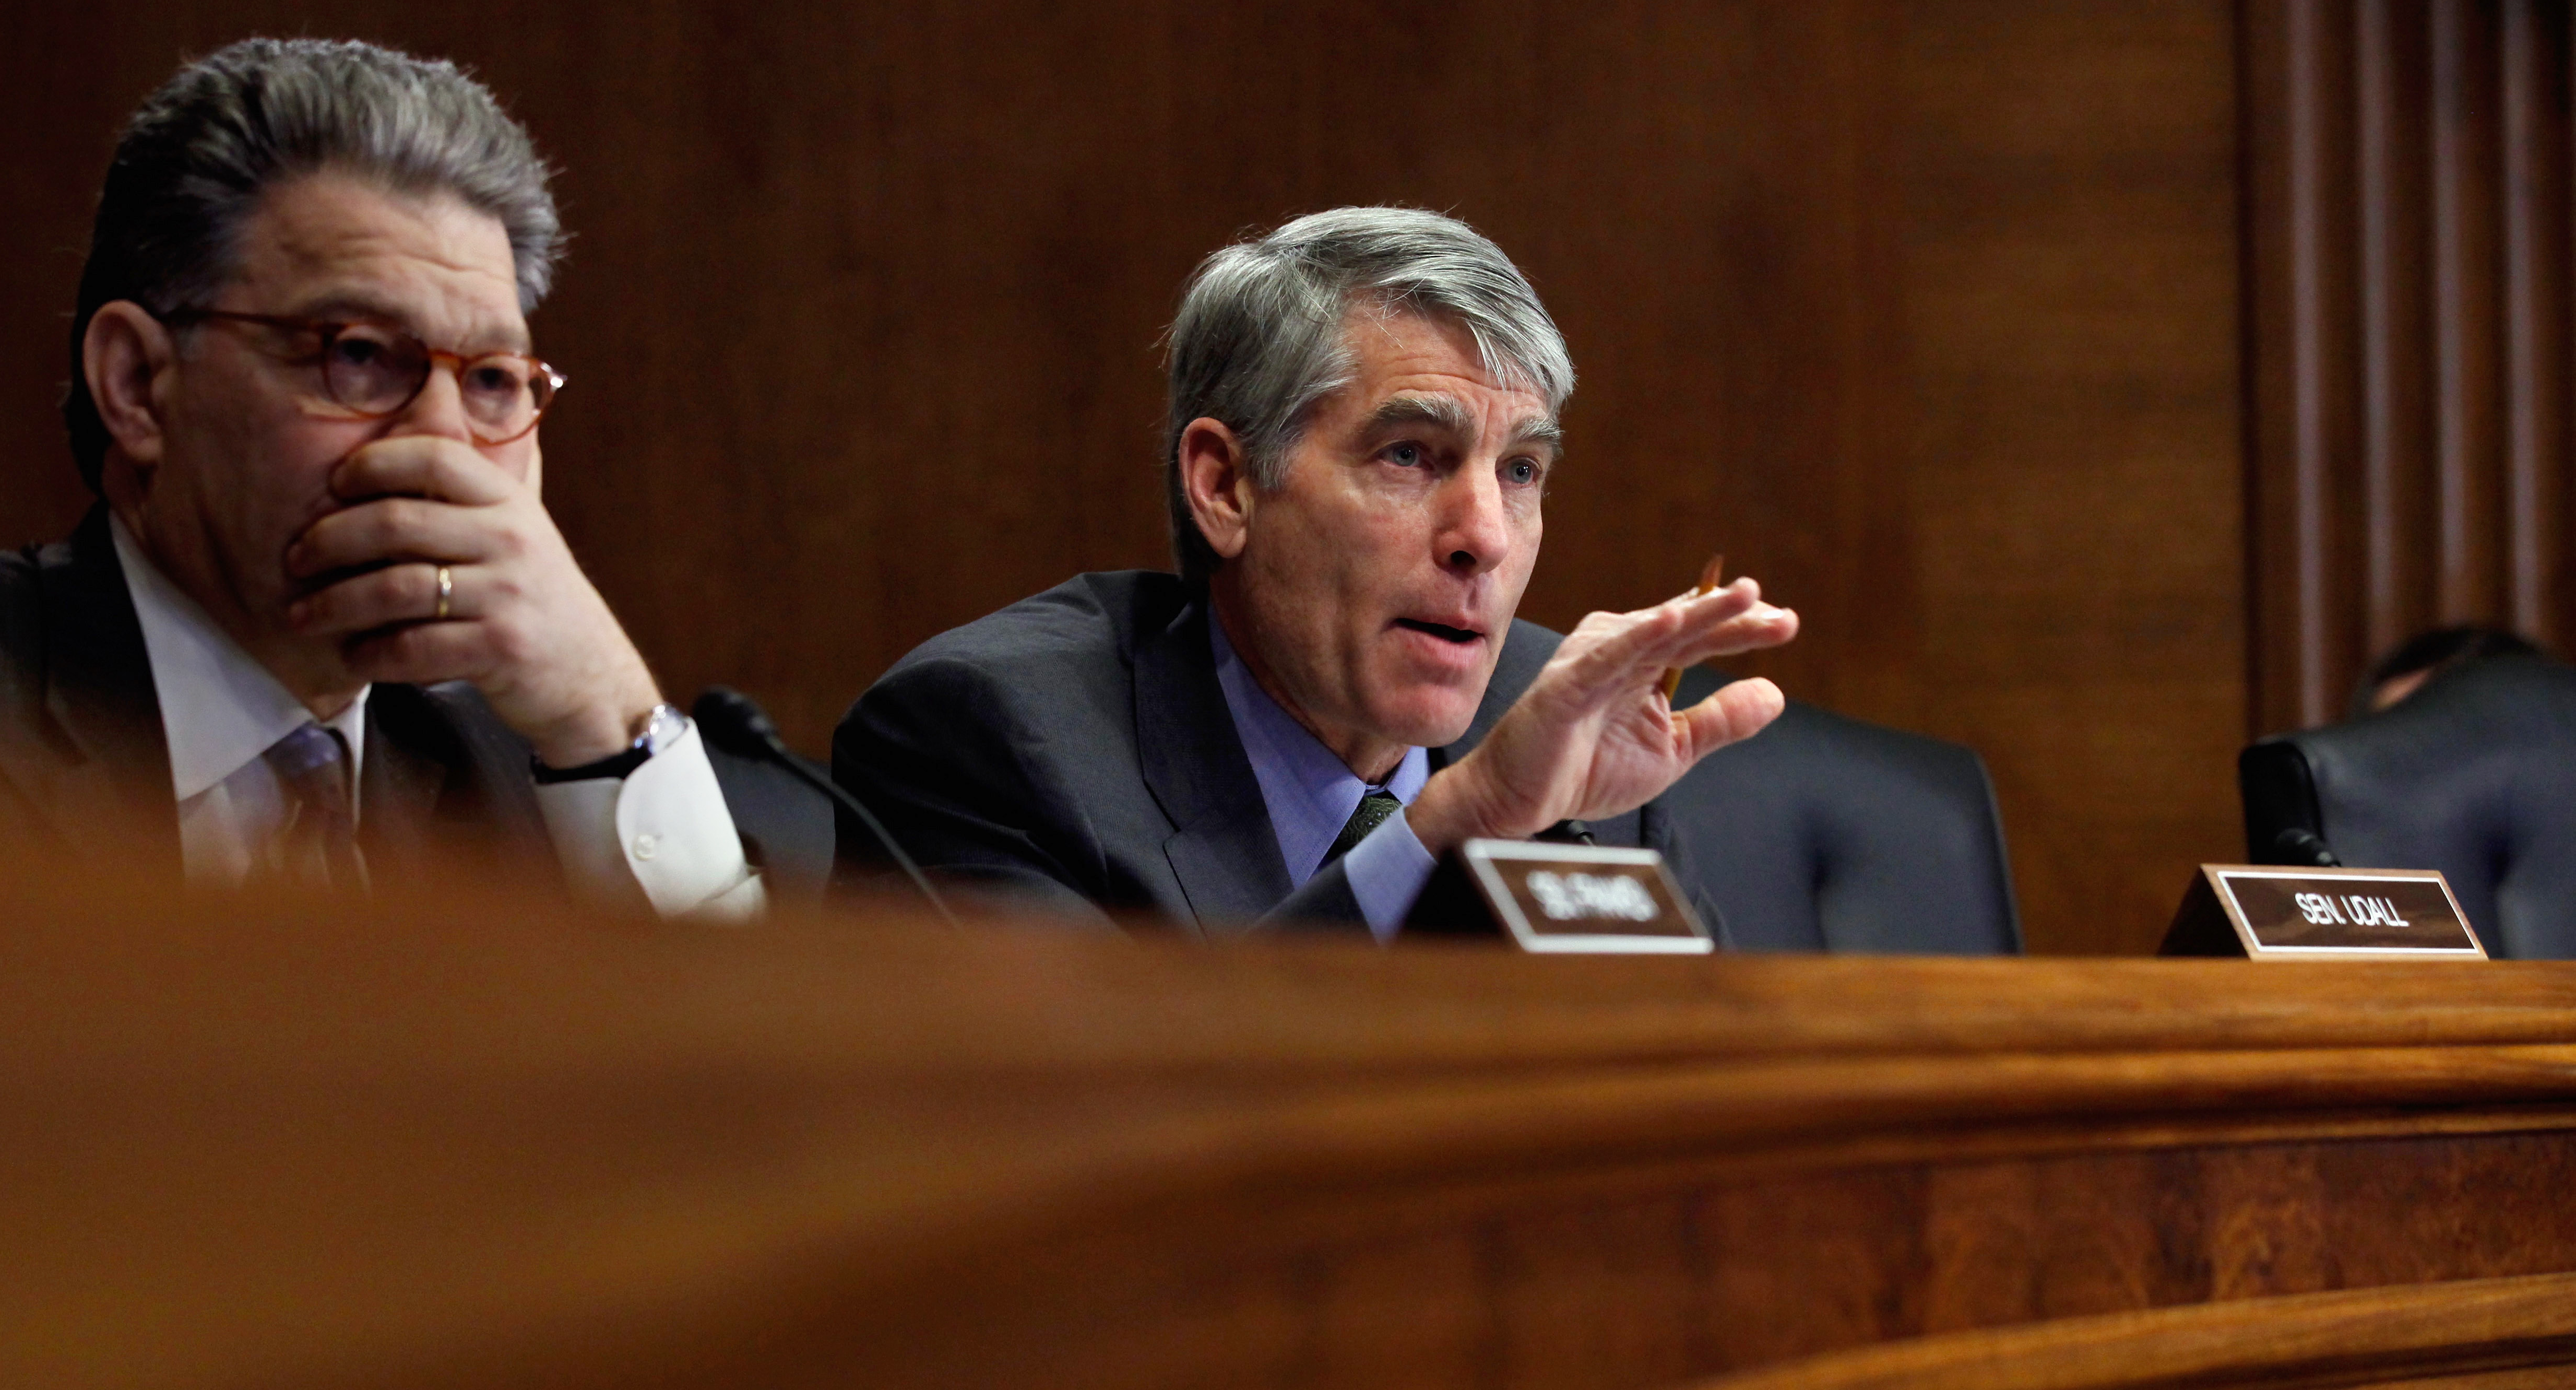 """U.S. Senator Mark Udall says Americans' """"right to be free from 'unreasonable searches and seizures' applies regardless of whether it involves a letter stored in a desk or an email stored online."""""""